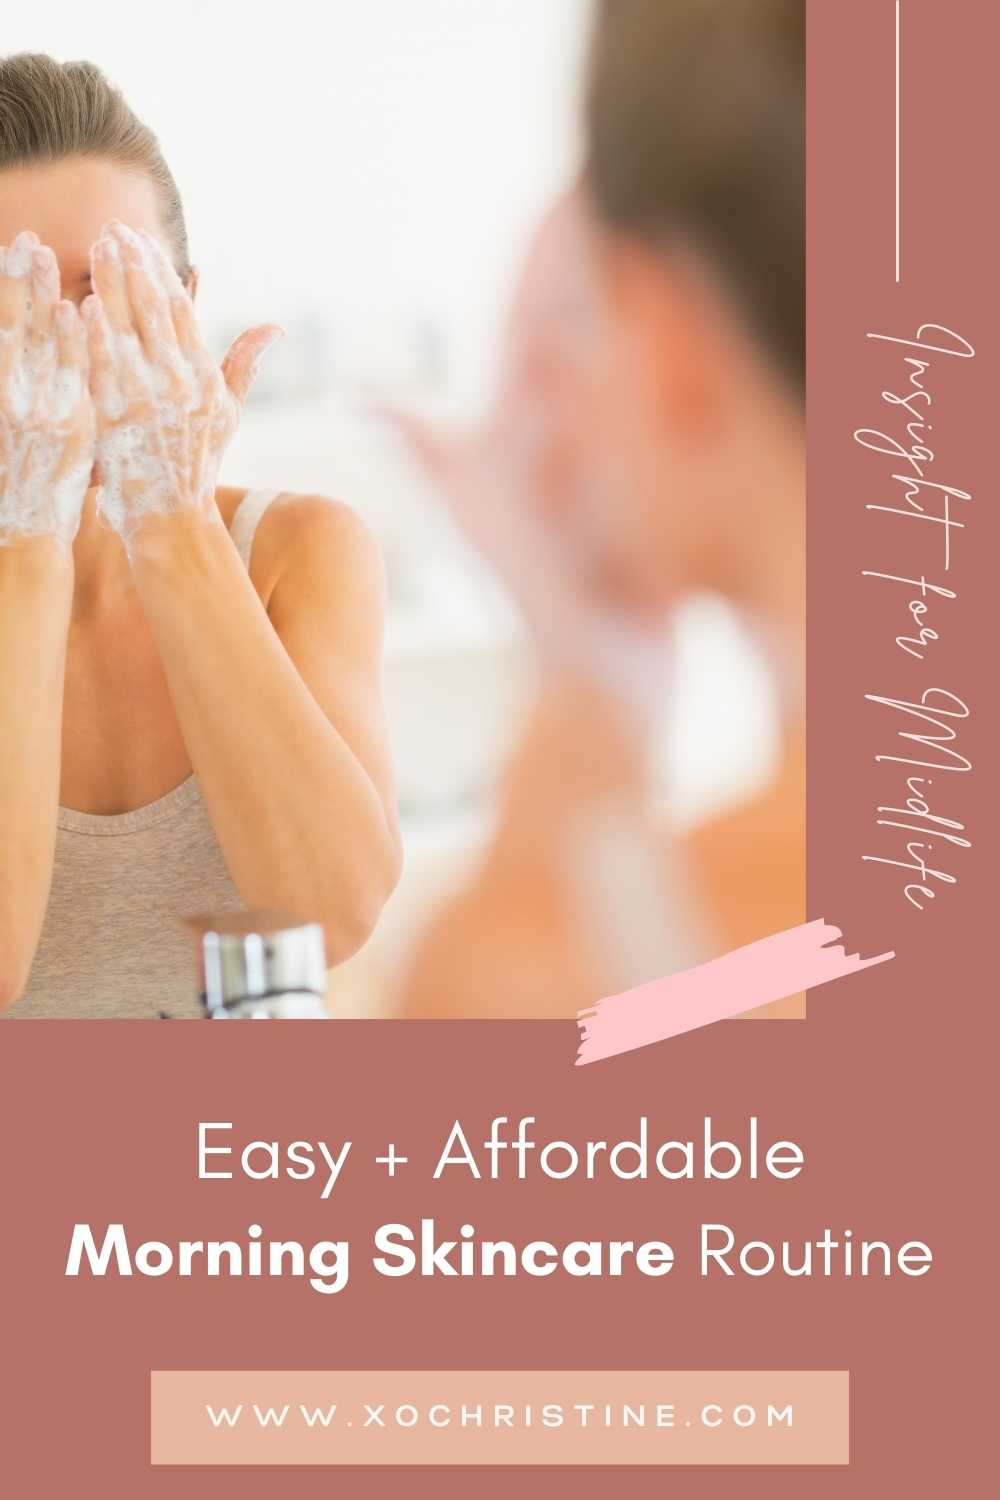 simple morning skincare routine for women 40+